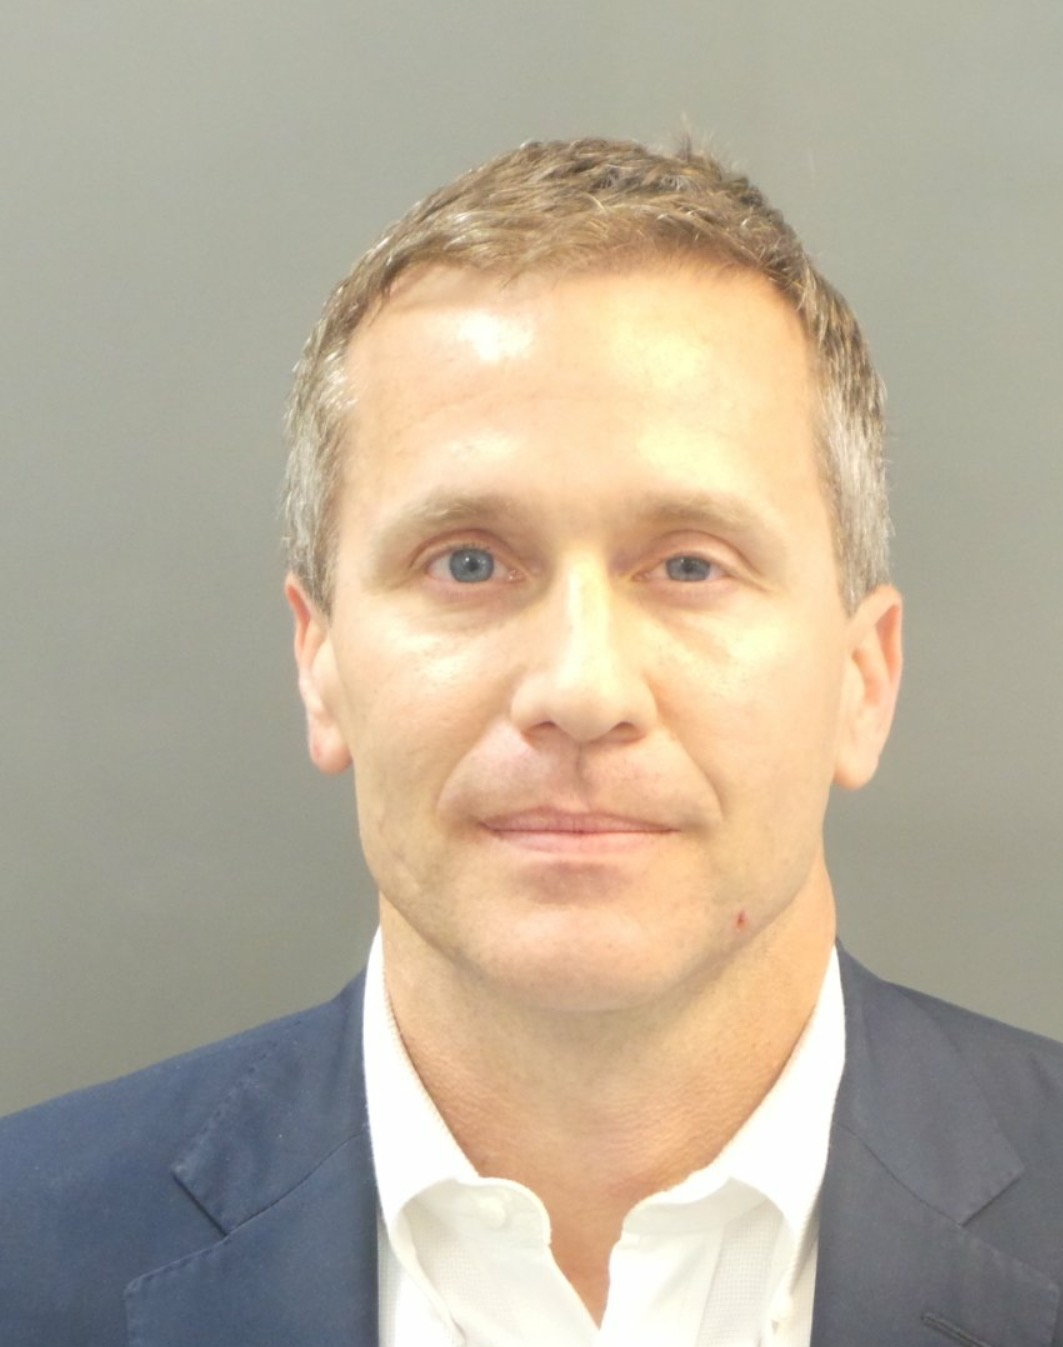 Missouri Governor Eric Greitens accused of unwanted sexual advances